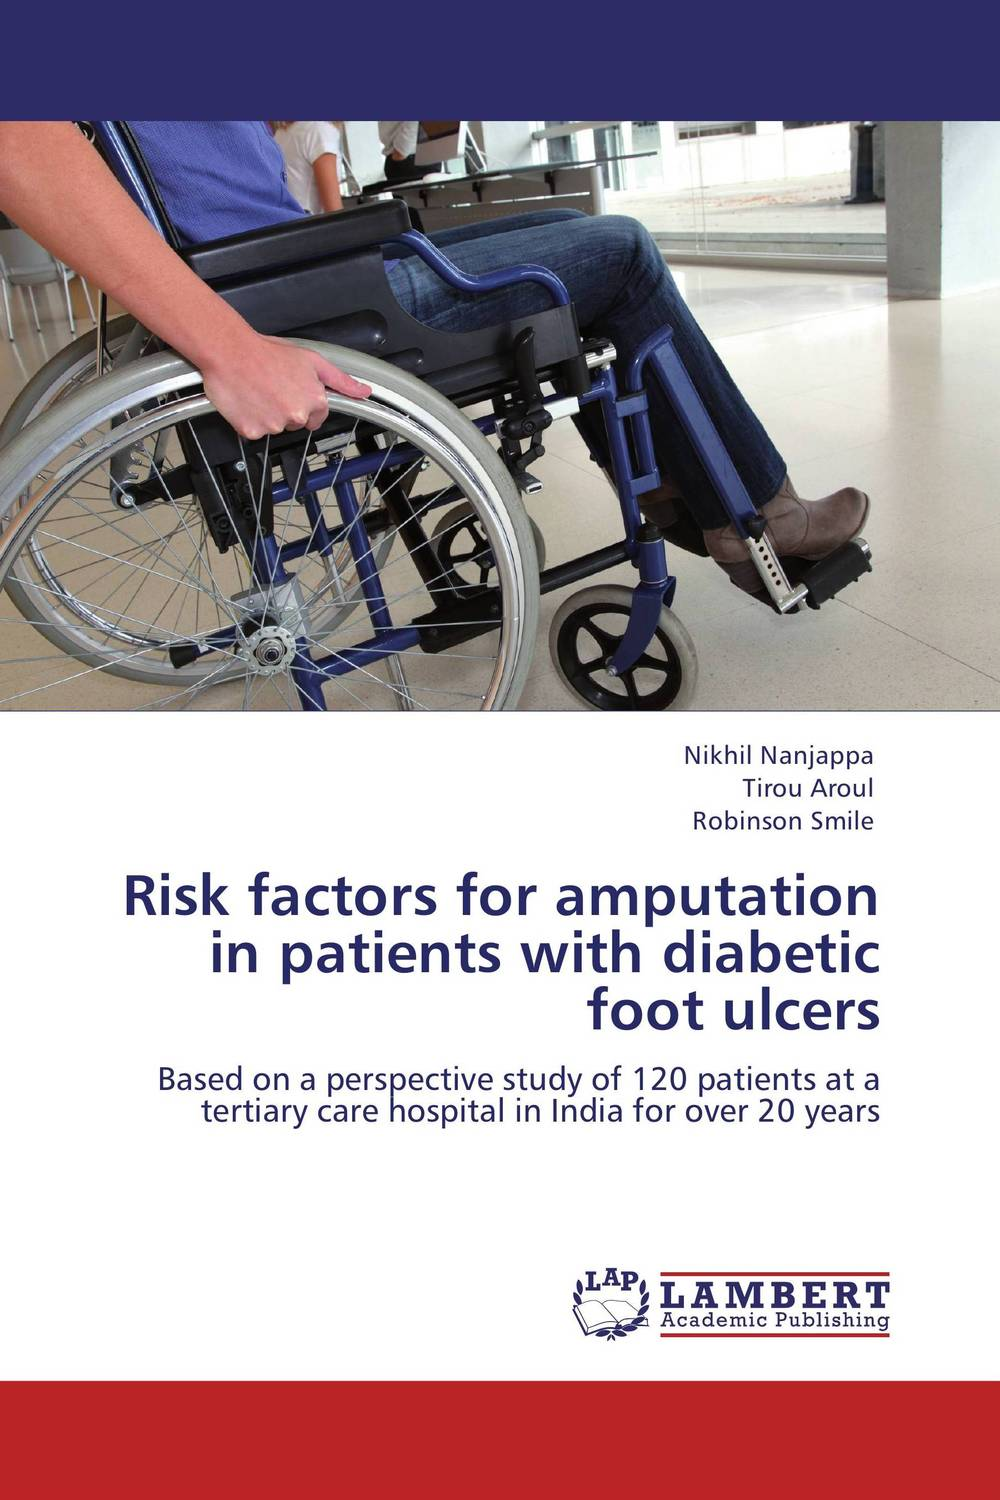 Risk factors for amputation in patients with diabetic foot ulcers chronic ulcers management by nimbaadya taila